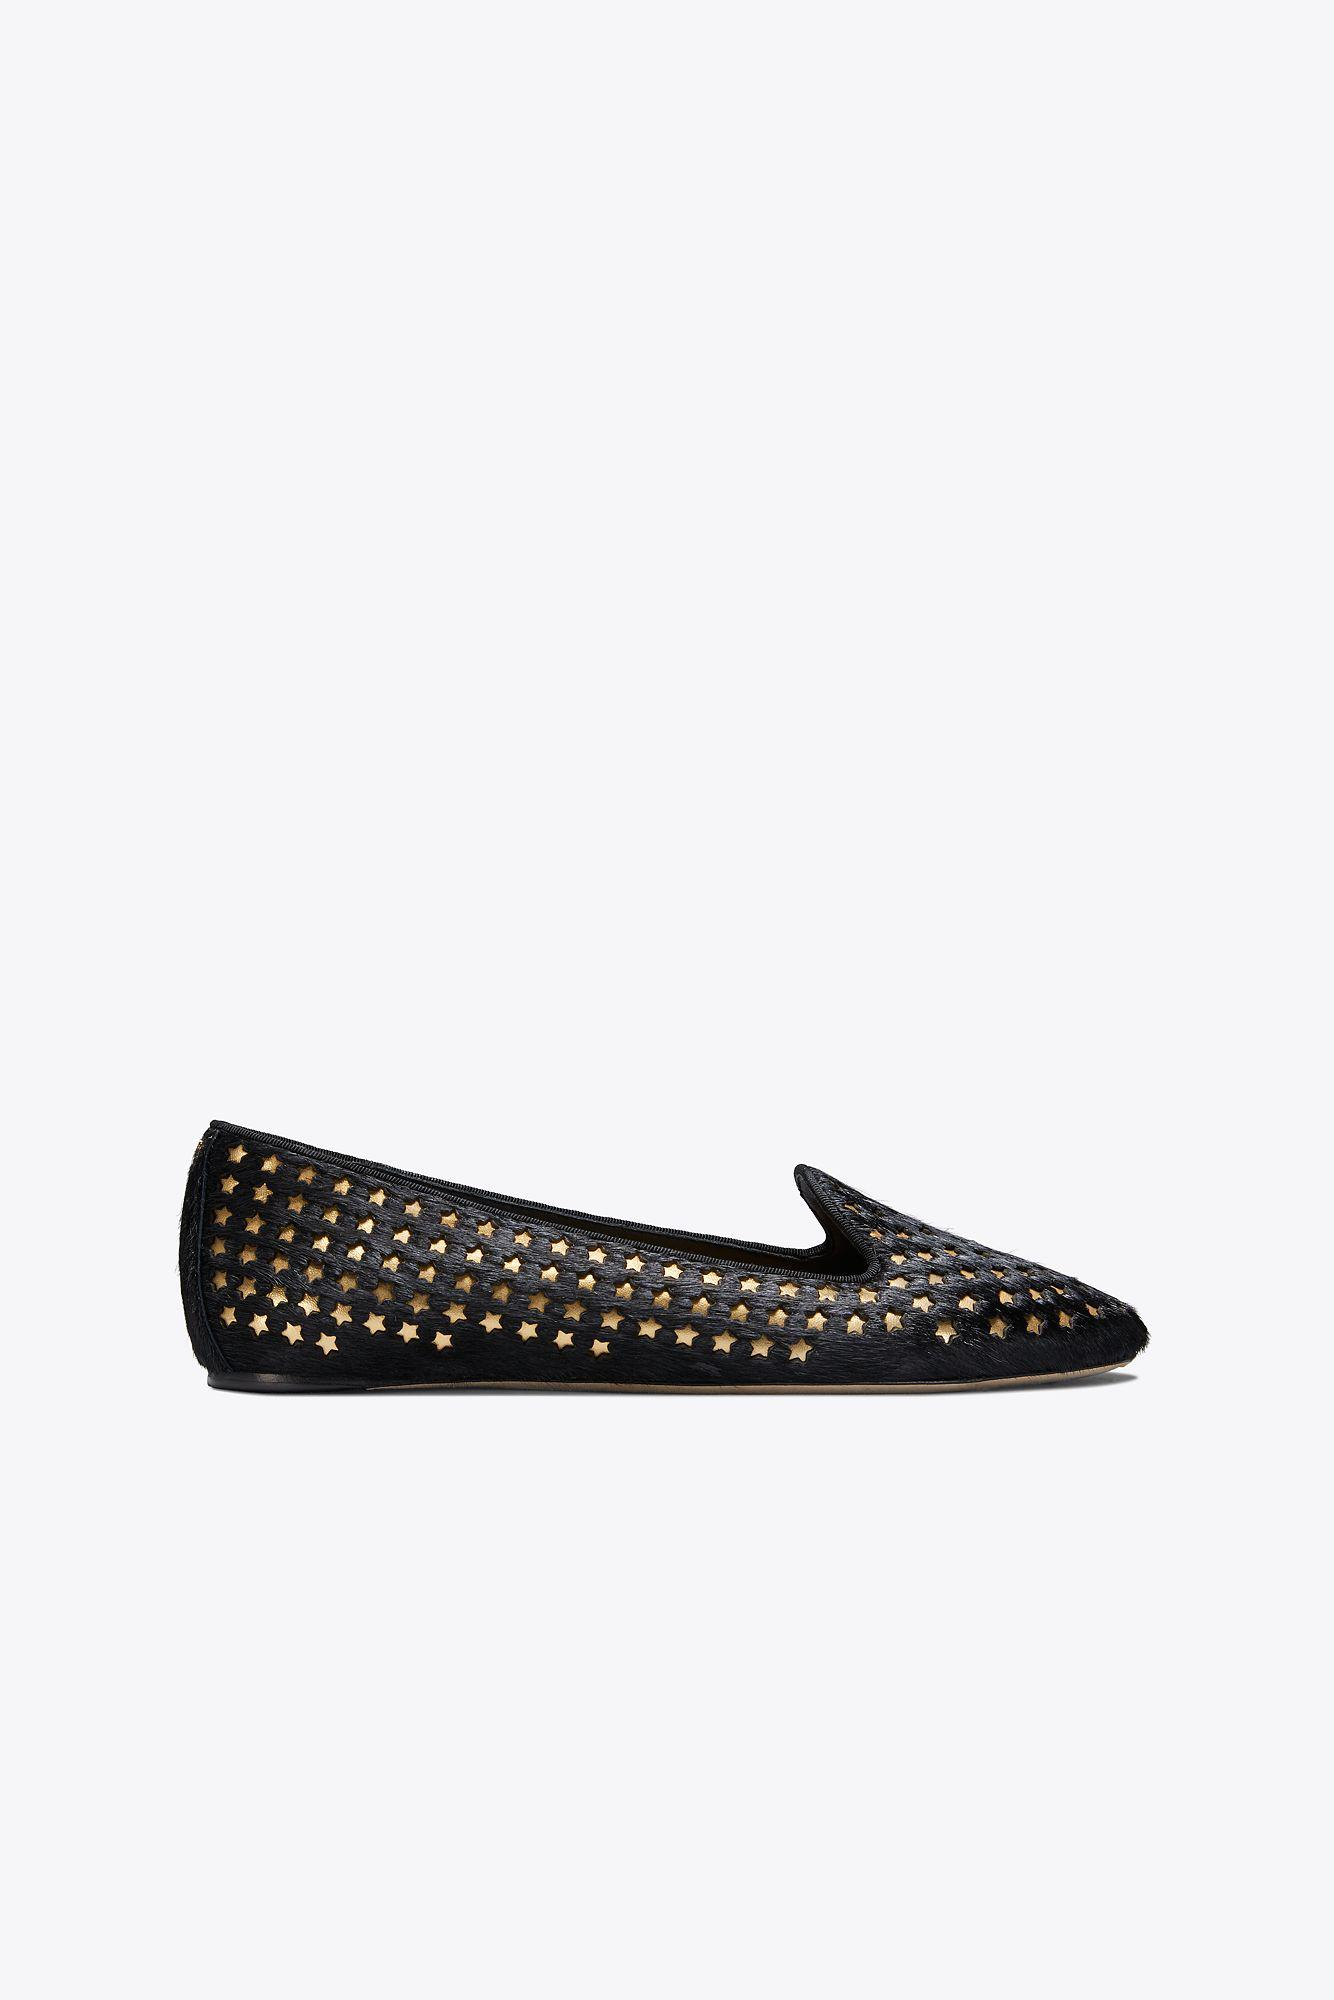 26b2082cecb9 Lyst - Tory Burch Olympia Stud Loafers in Black - Save 31%